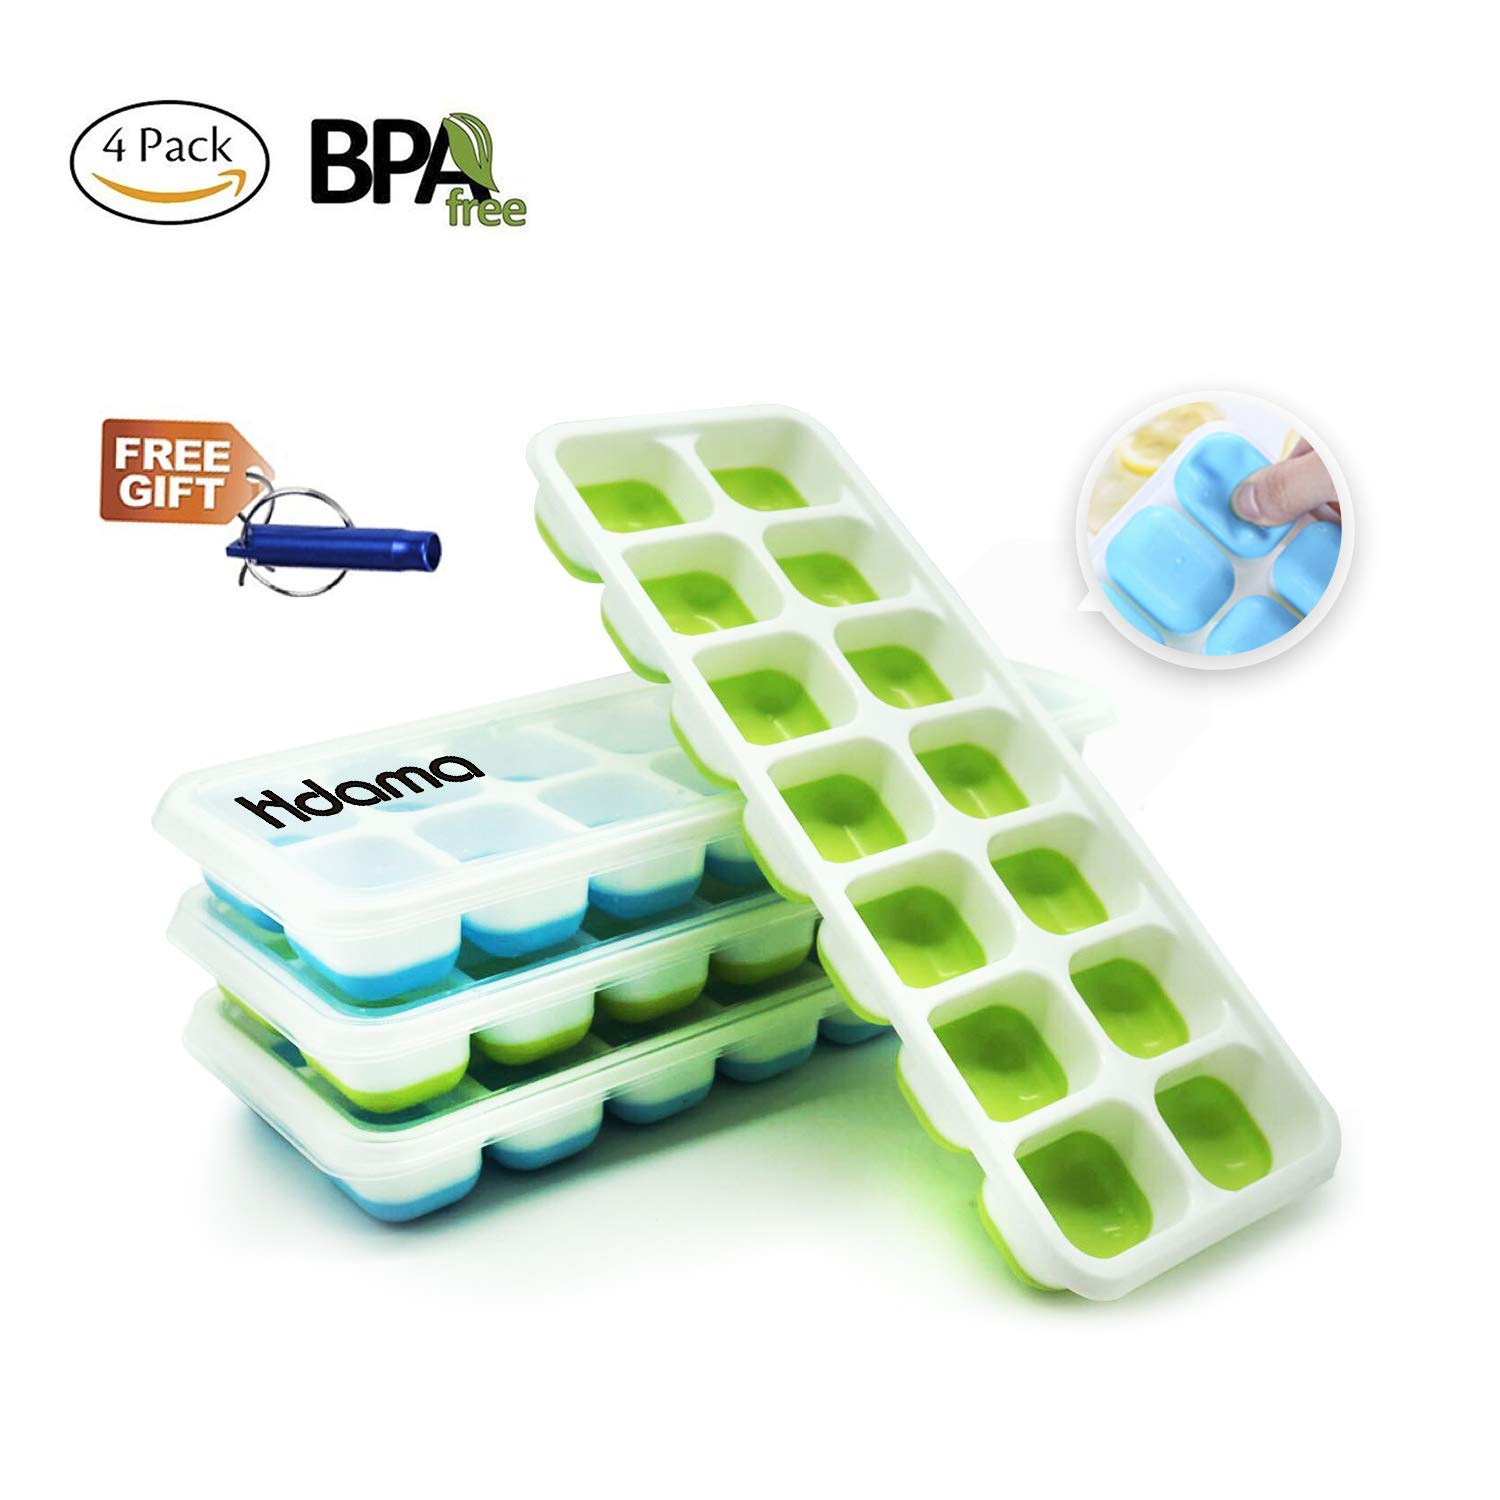 Ice Cube Trays, Silicone Ice Cube Tray with Lids BPA Free, Easy Release Large Cubes Best Ice Trays with No Spill Cover Flexible and Reusable (4 Pack)